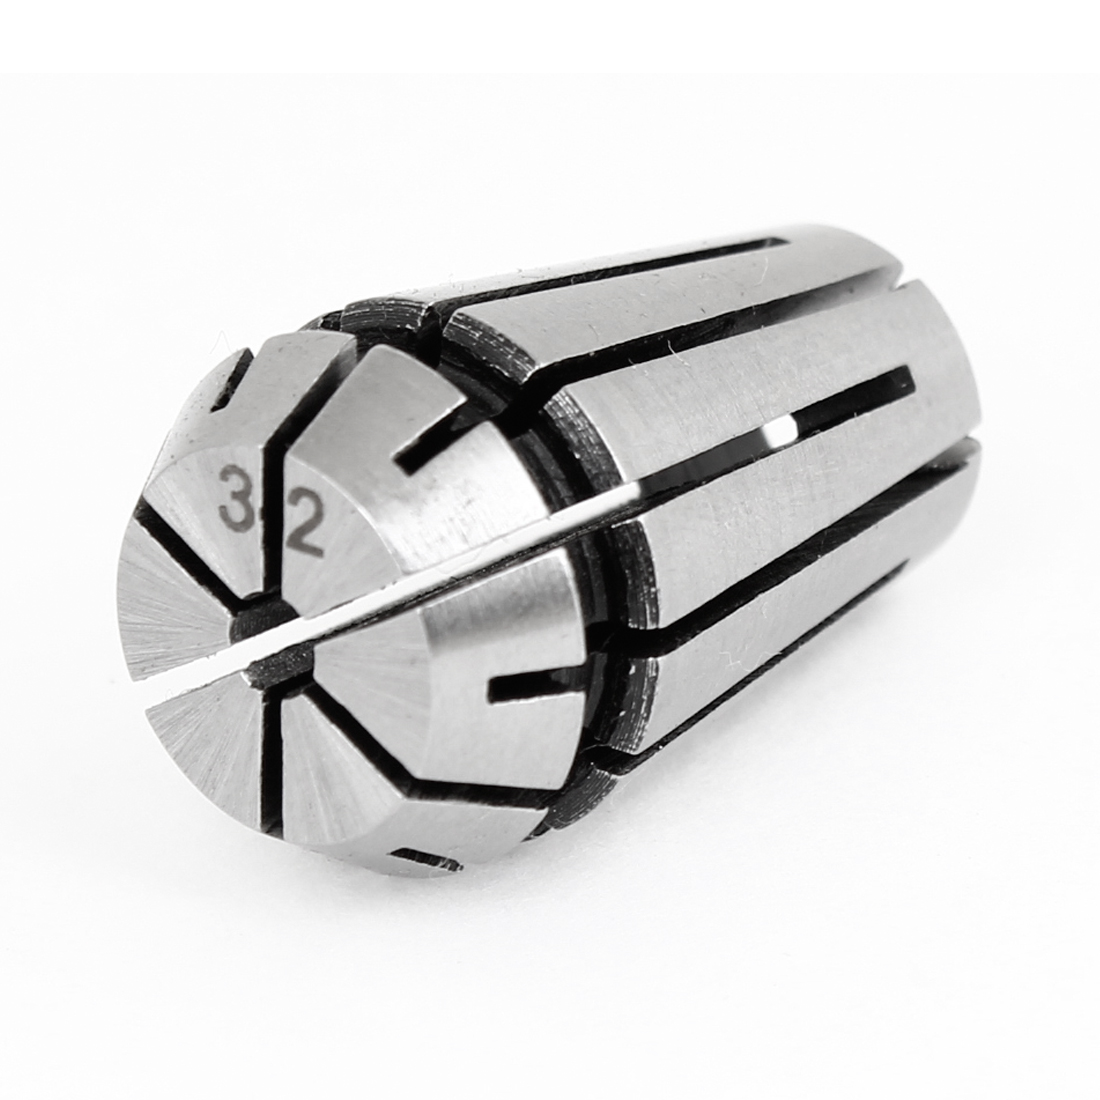 Clamping Range 3-2mm Stainless Steel ER16 Precision Spring Collet